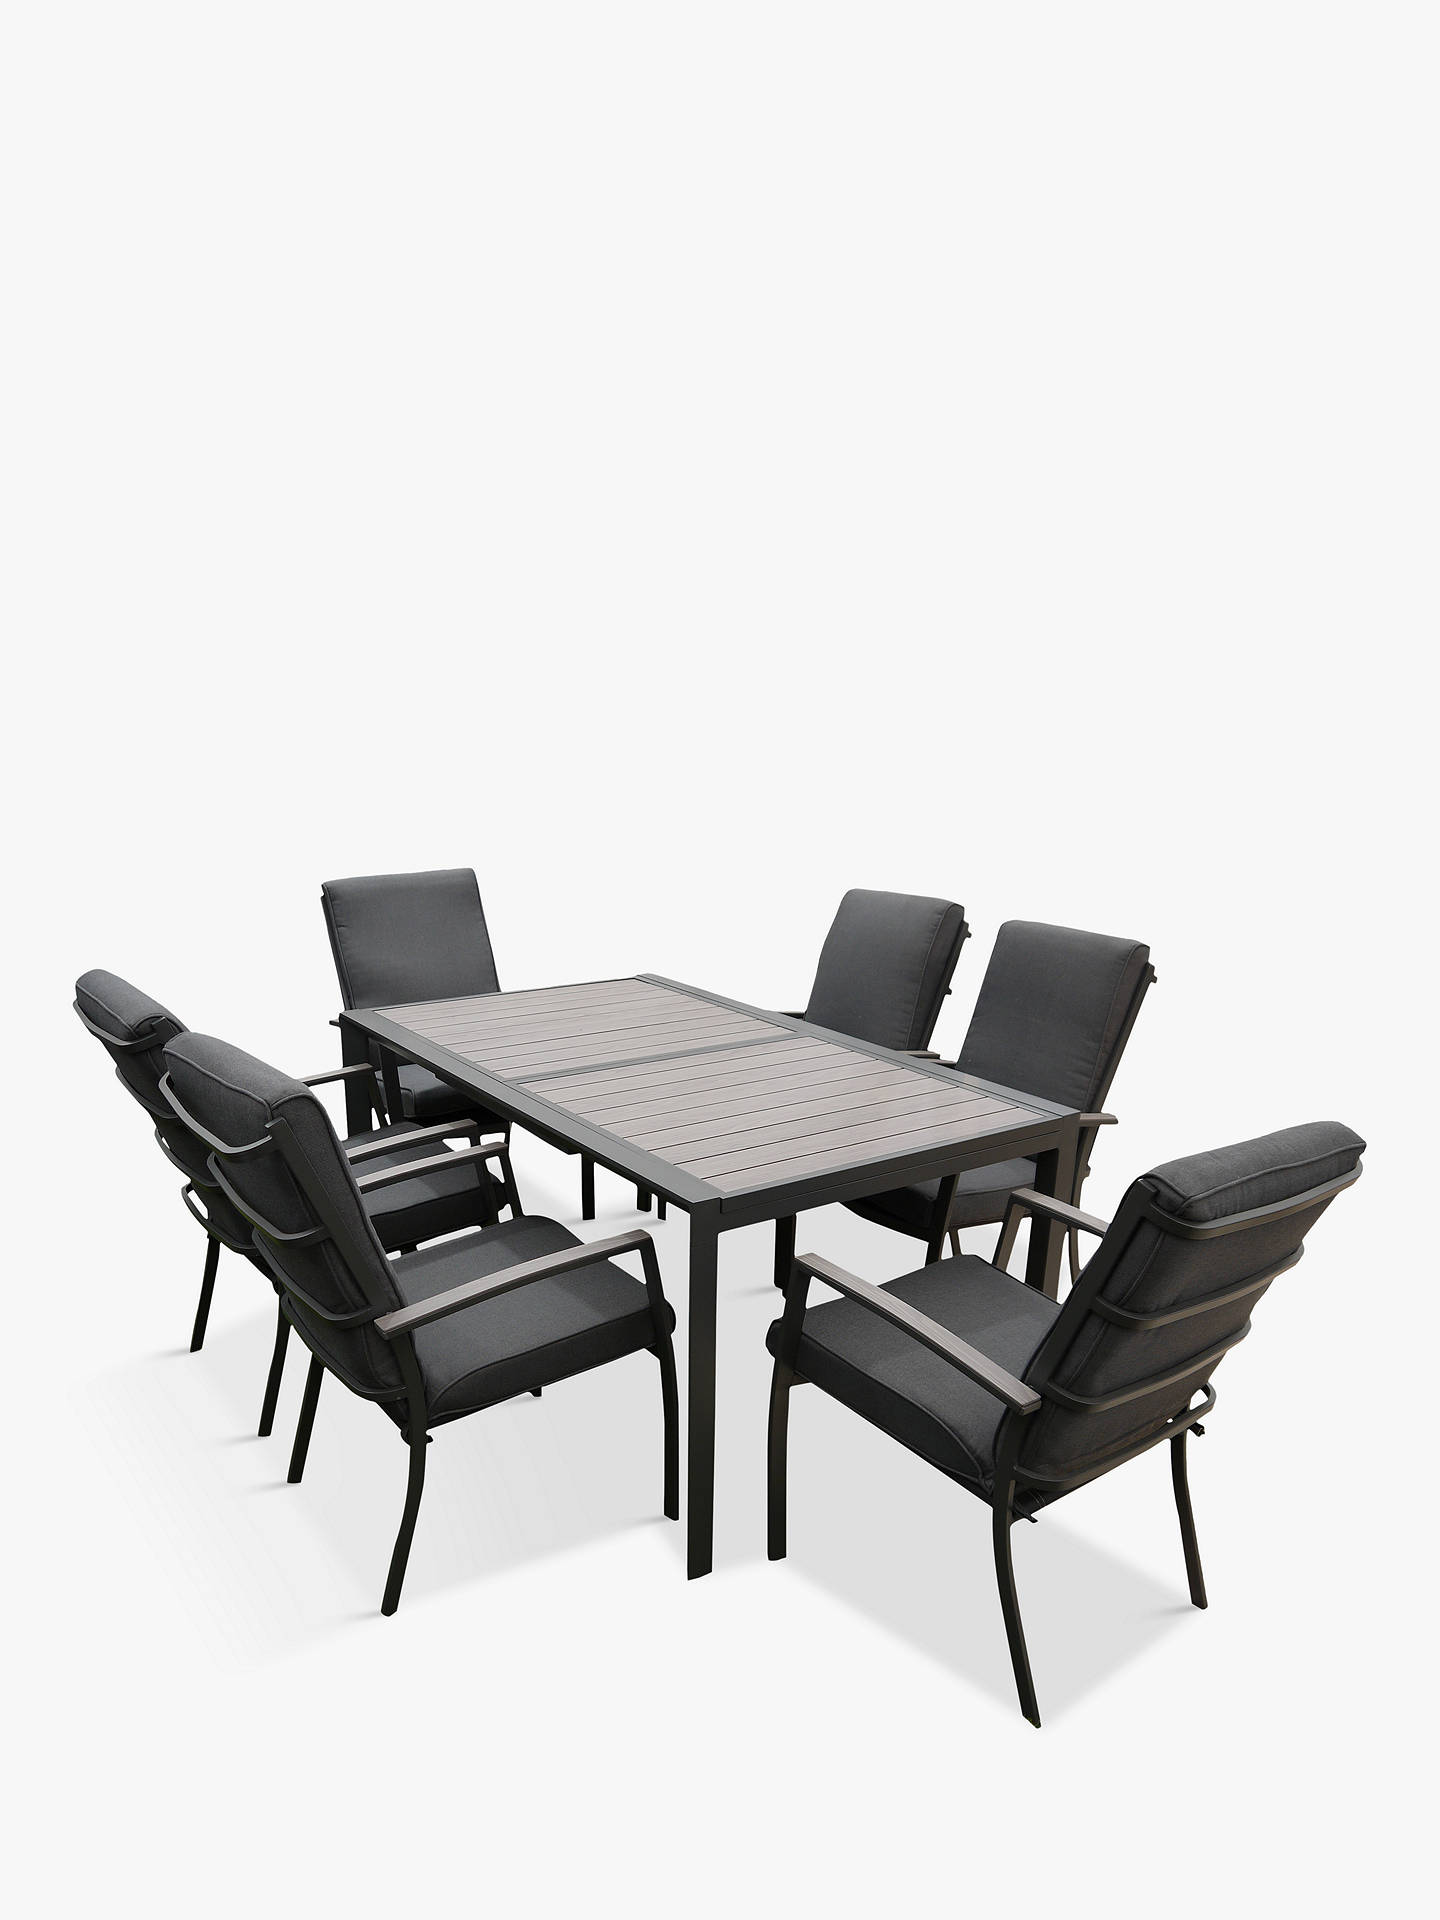 LG Outdoor Milan 10-Seat Extendable Garden Table and Chairs Dining